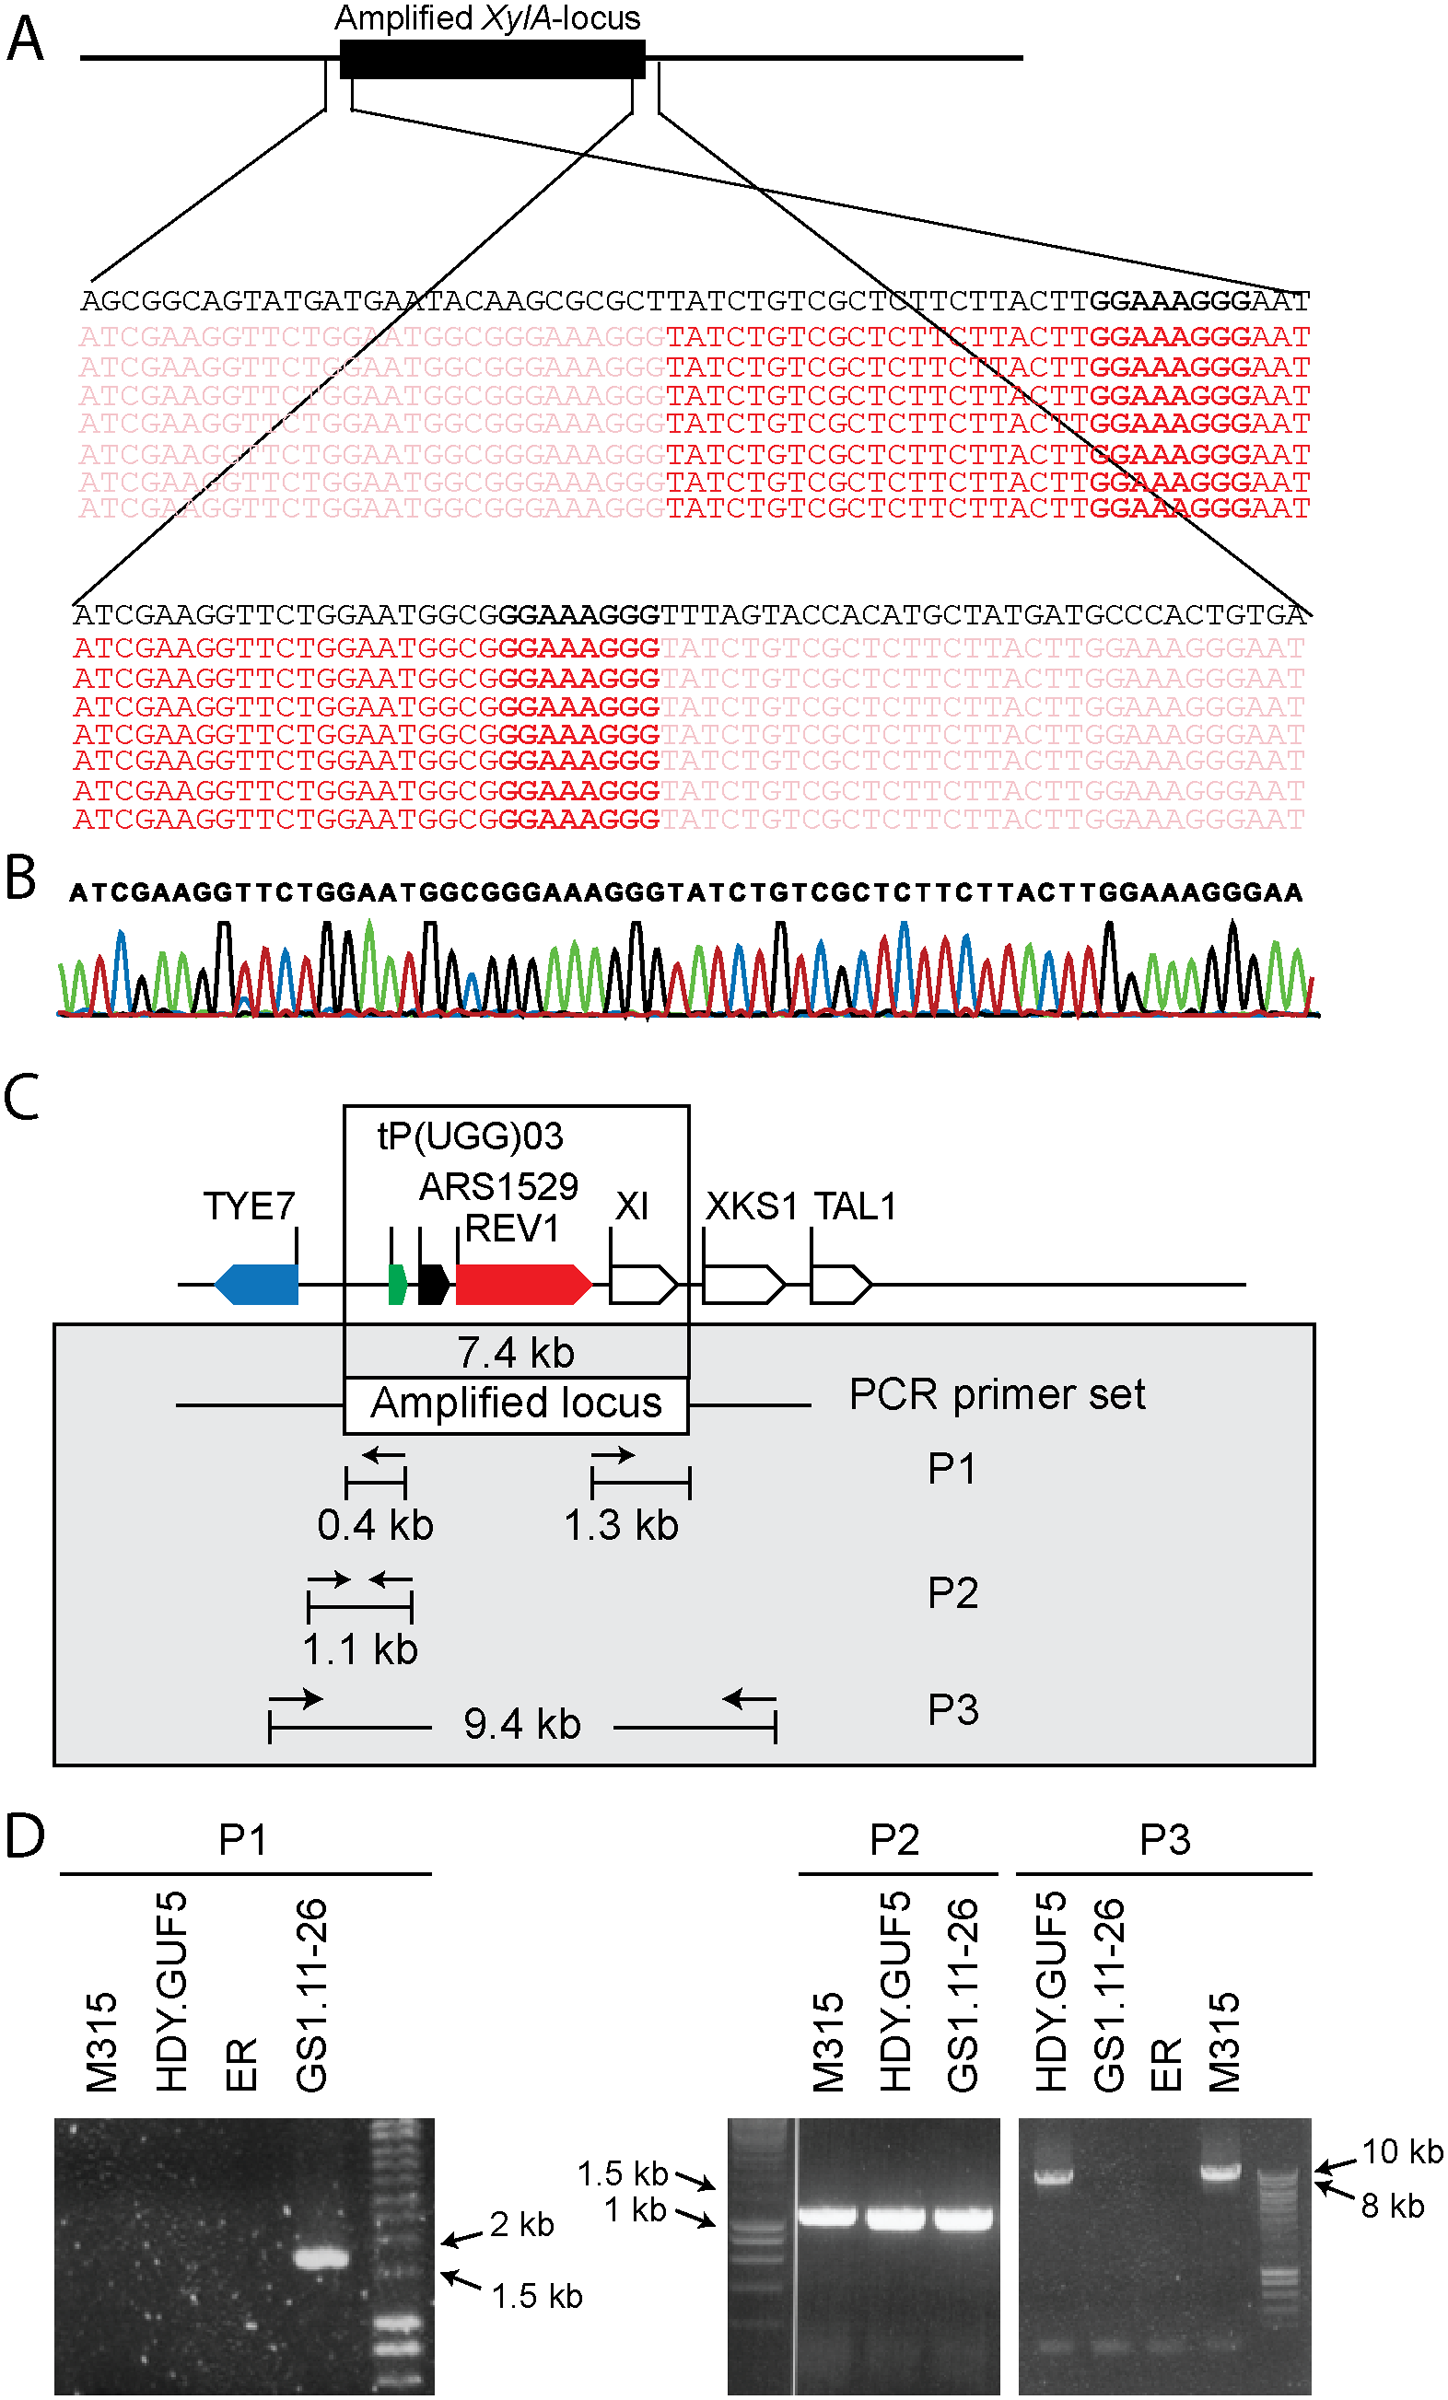 Sequence analysis at the borders of the amplified <i>XylA</i>-locus, and verification of the presence of circular or tandem repeats.